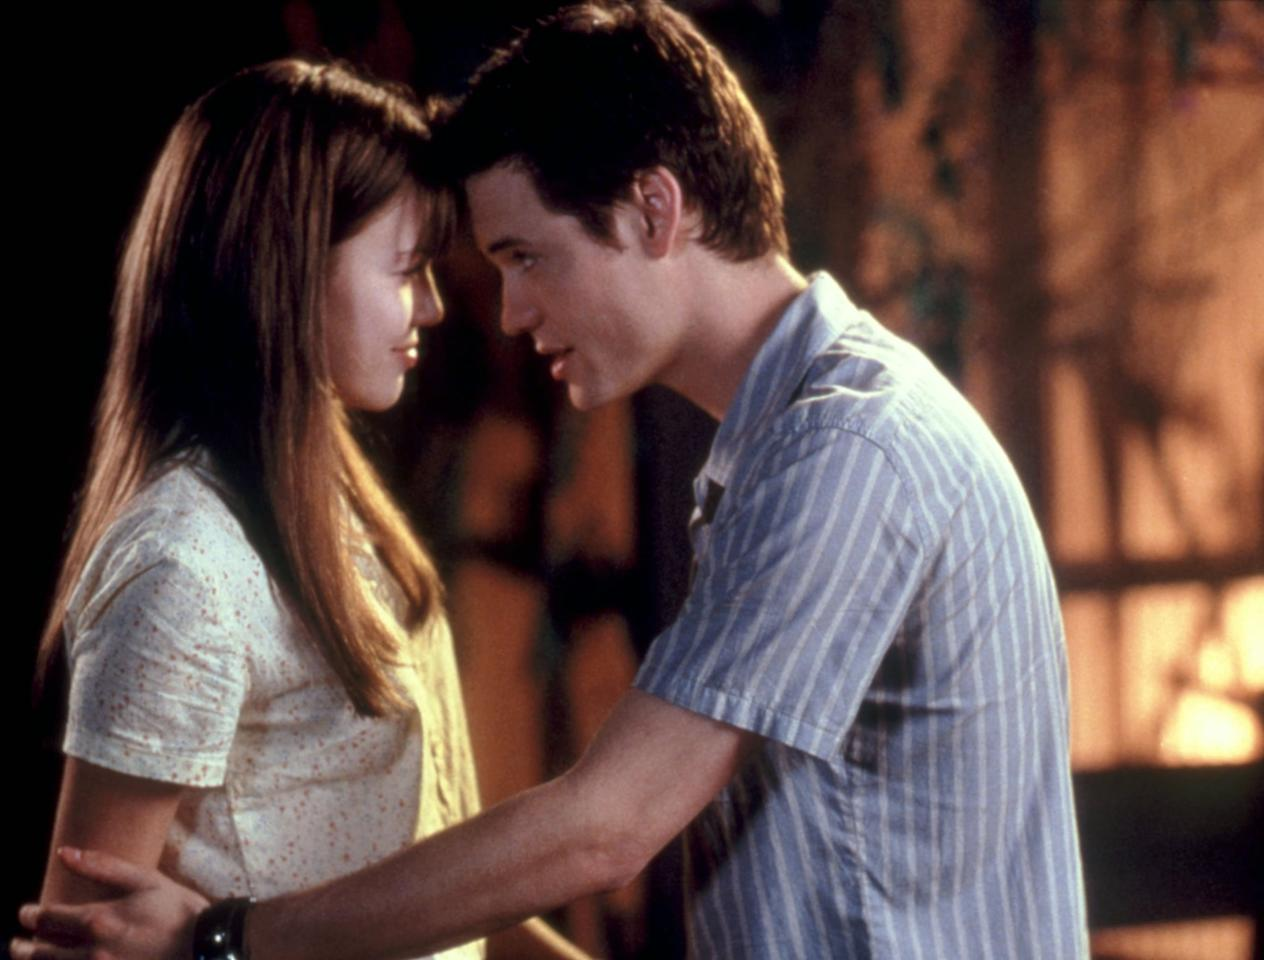 "<p>Sick of <strong>The Notebook</strong>? Skip to <strong>A Walk to Remember</strong>, the second-greatest Nicholas Sparks adaptation of all time. We're still in our feelings about <a href=""https://www.popsugar.com/entertainment/Mandy-Moore-Shane-West-Discuss-Walk-Remember-2017-43055792"" class=""ga-track"" data-ga-category=""internal click"" data-ga-label=""https://www.popsugar.com/entertainment/Mandy-Moore-Shane-West-Discuss-Walk-Remember-2017-43055792"" data-ga-action=""body text link"">the crush Mandy Moore had on Shane West while filming</a>.</p> <p><a href=""https://www.netflix.com/title/60022589"" target=""_blank"" class=""ga-track"" data-ga-category=""internal click"" data-ga-label=""https://www.netflix.com/title/60022589"" data-ga-action=""body text link"">Watch <strong>A Walk to Remember</strong> on Netflix</a>.</p>"